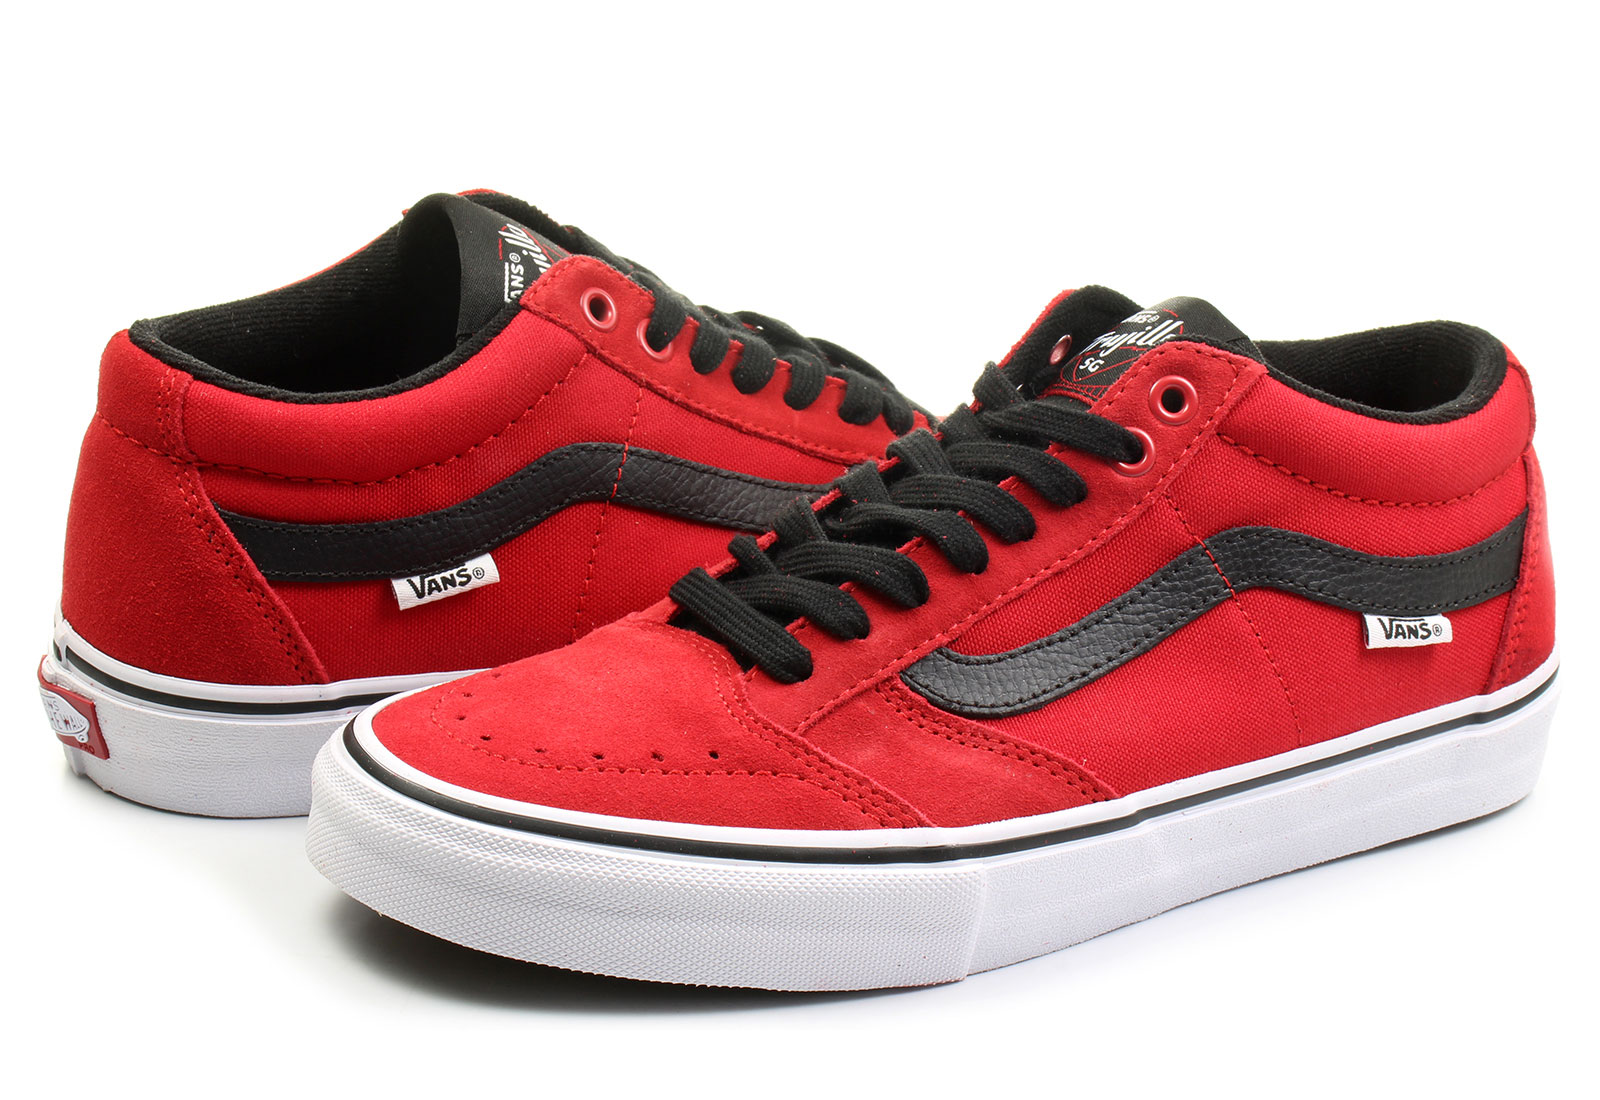 955bb07ac199 Vans Sneakers - Tnt Sg - VZSNIYC - Online shop for sneakers